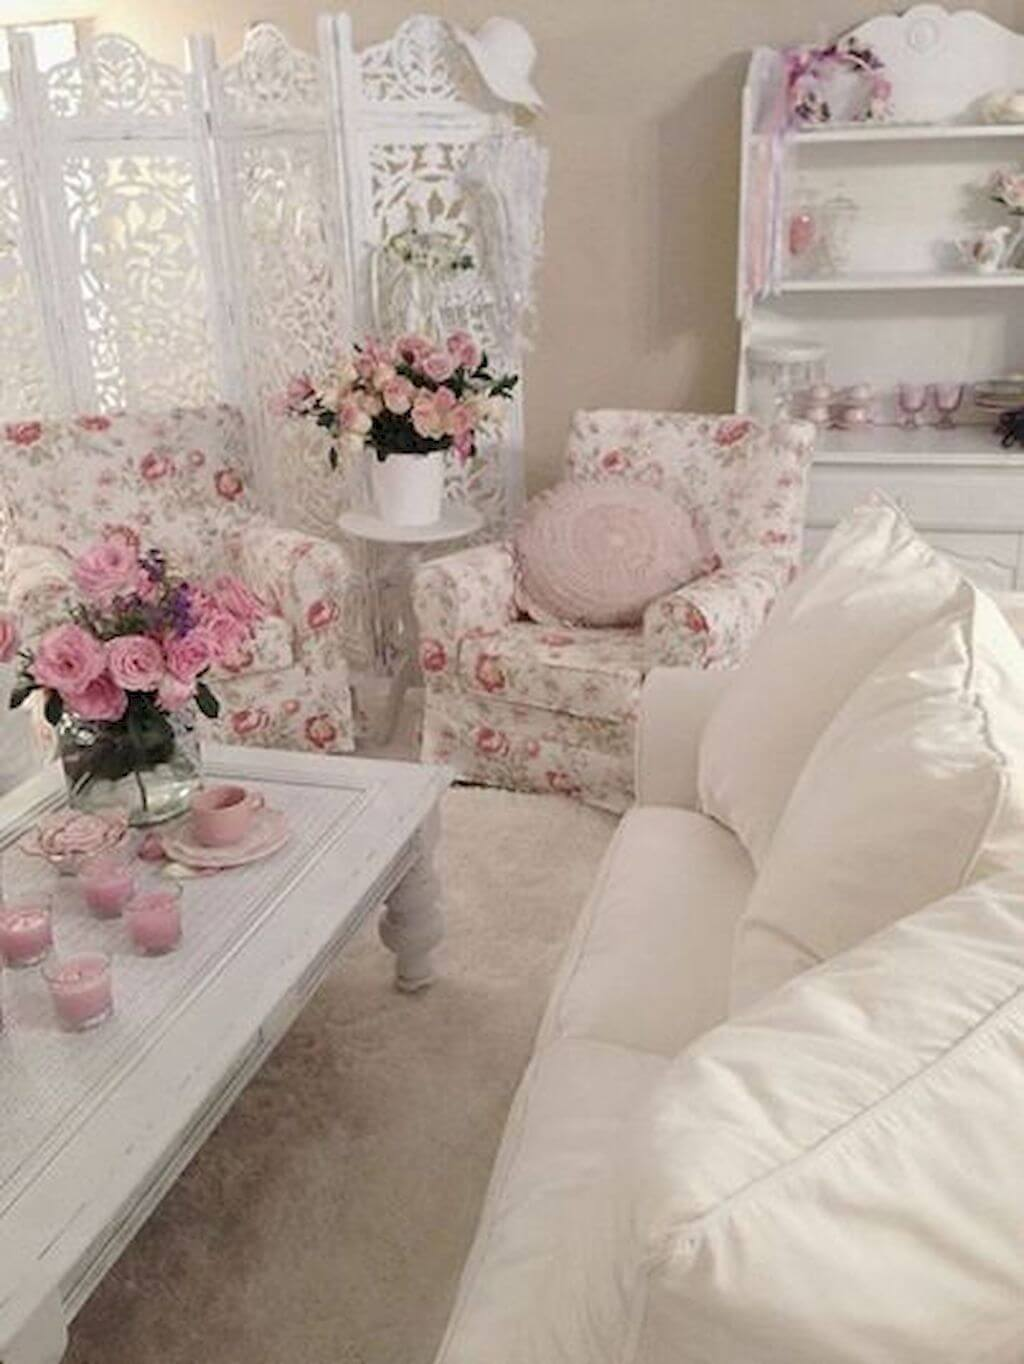 Inviting Space for Tea Time